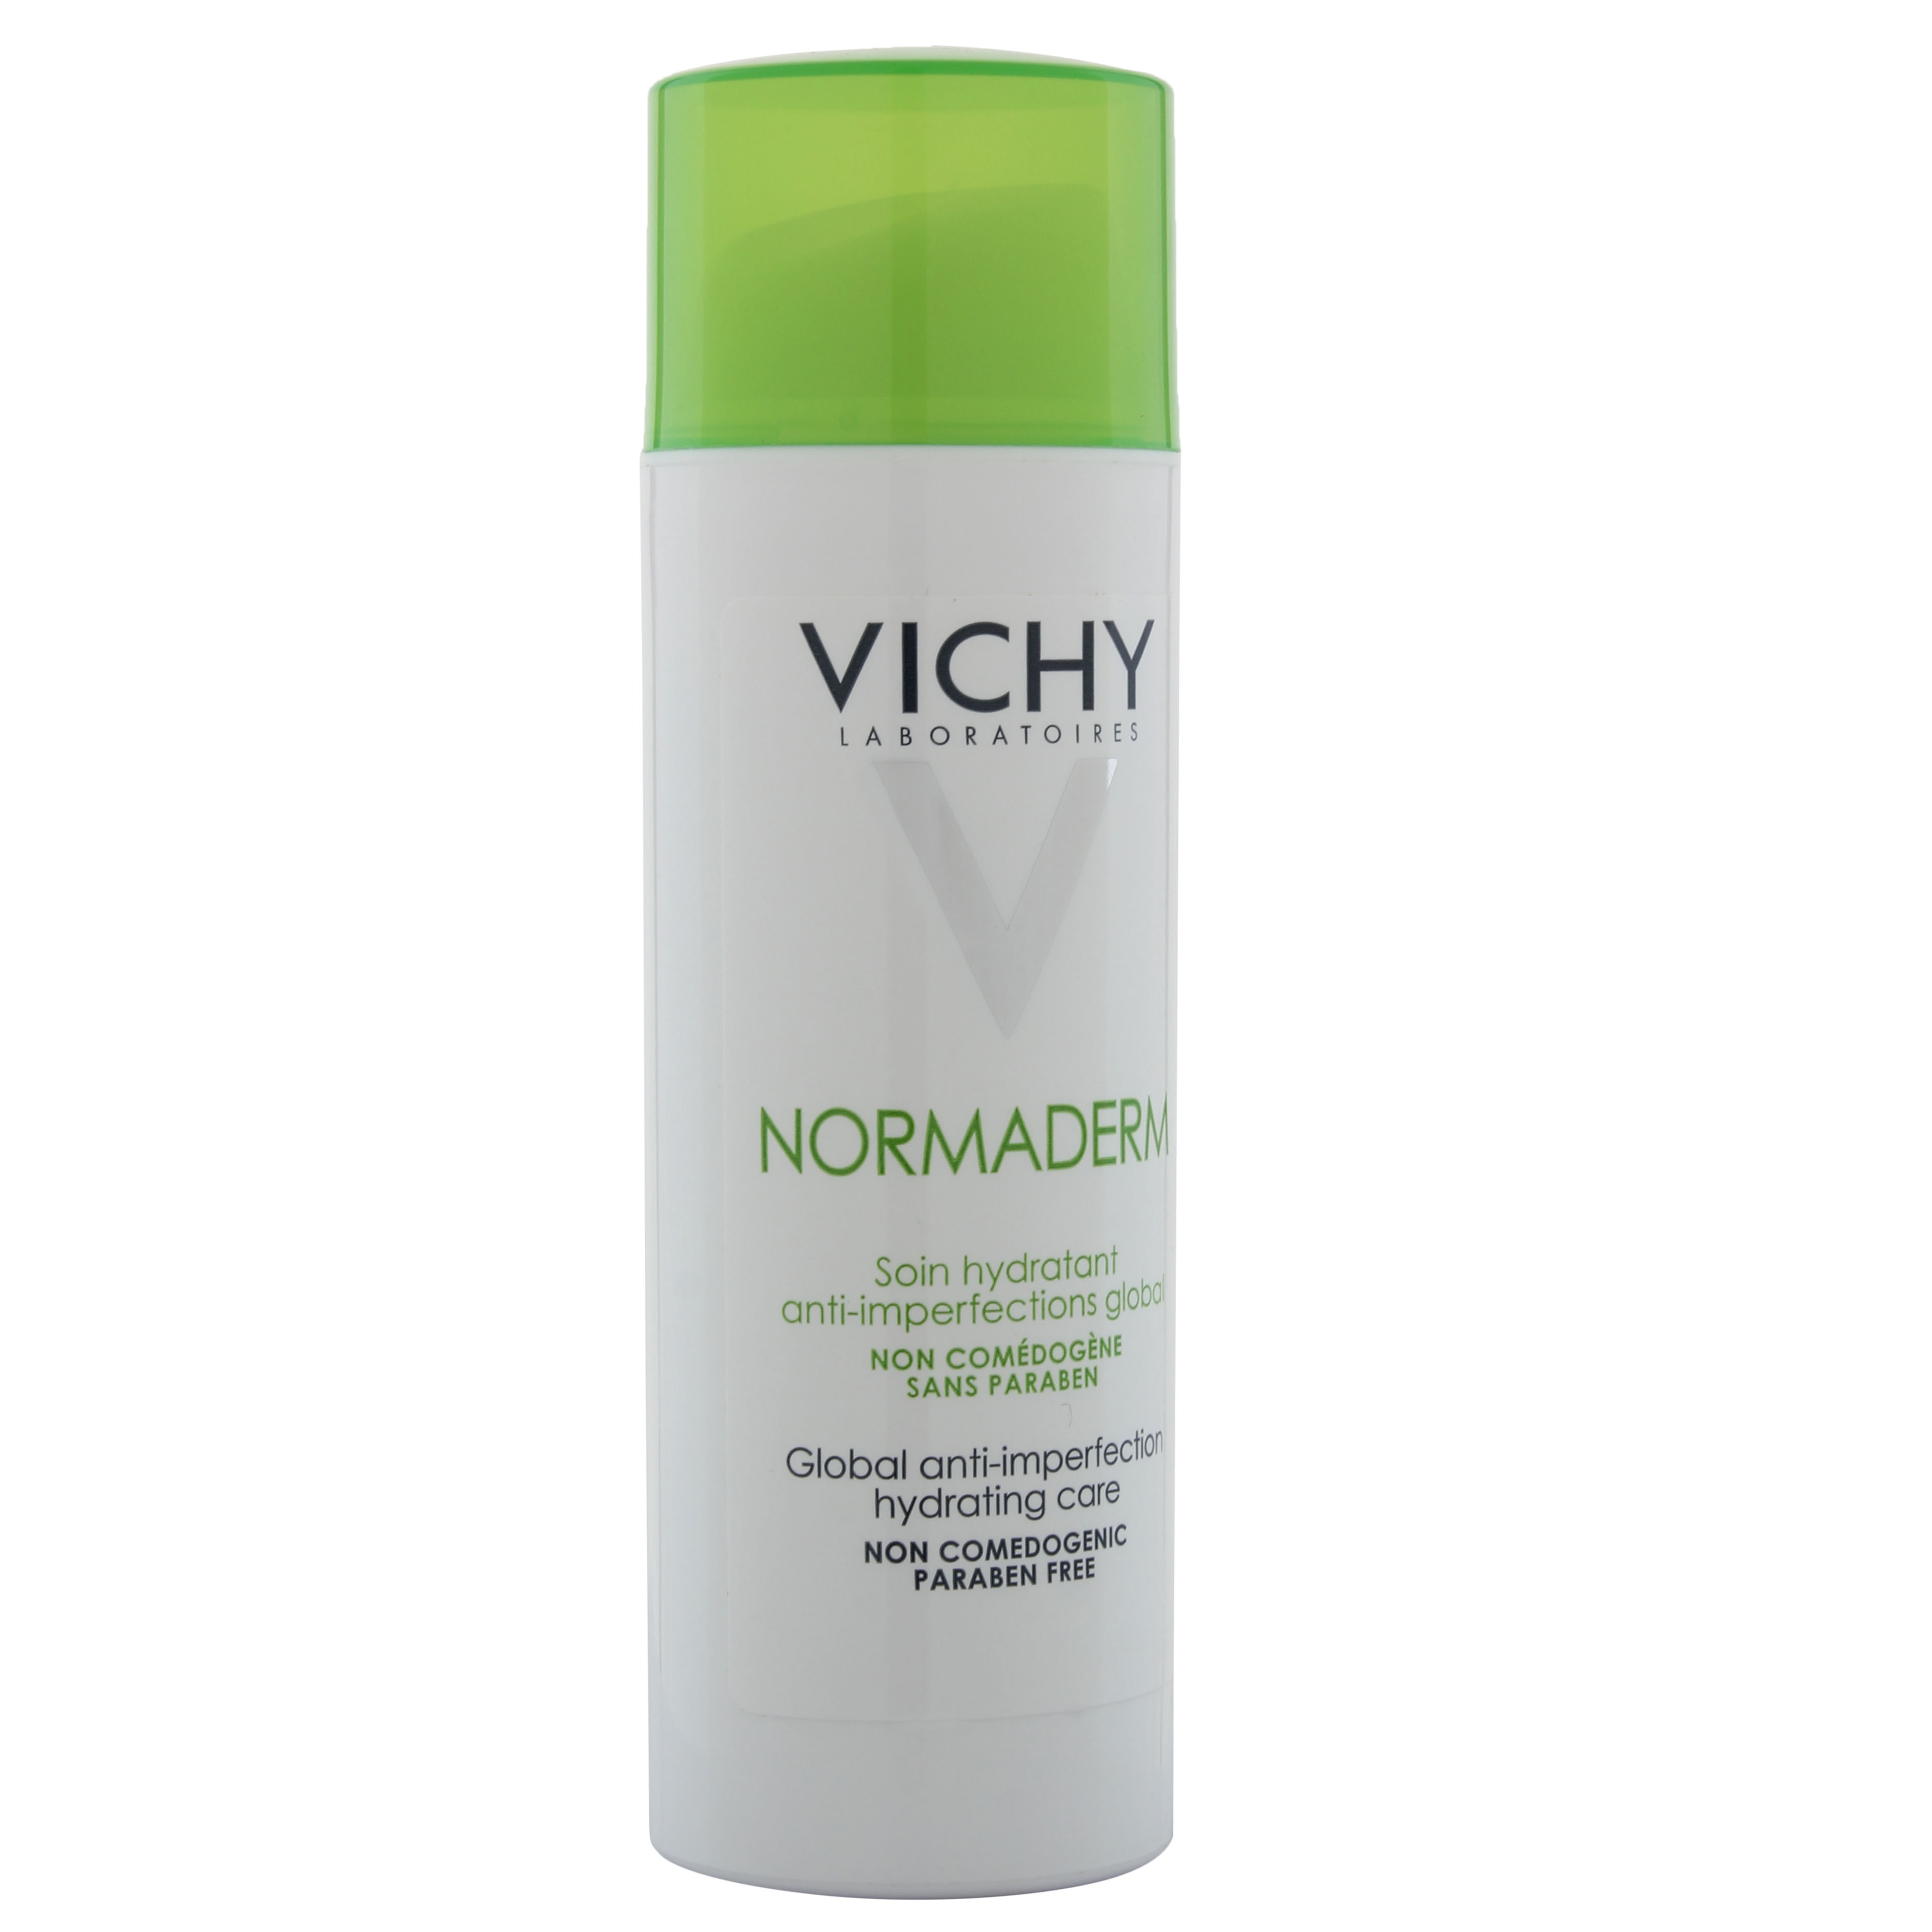 Vichy Normaderm Anti Imperfection Hydrating Care Non Comedogenic & Paraben Free 50ml